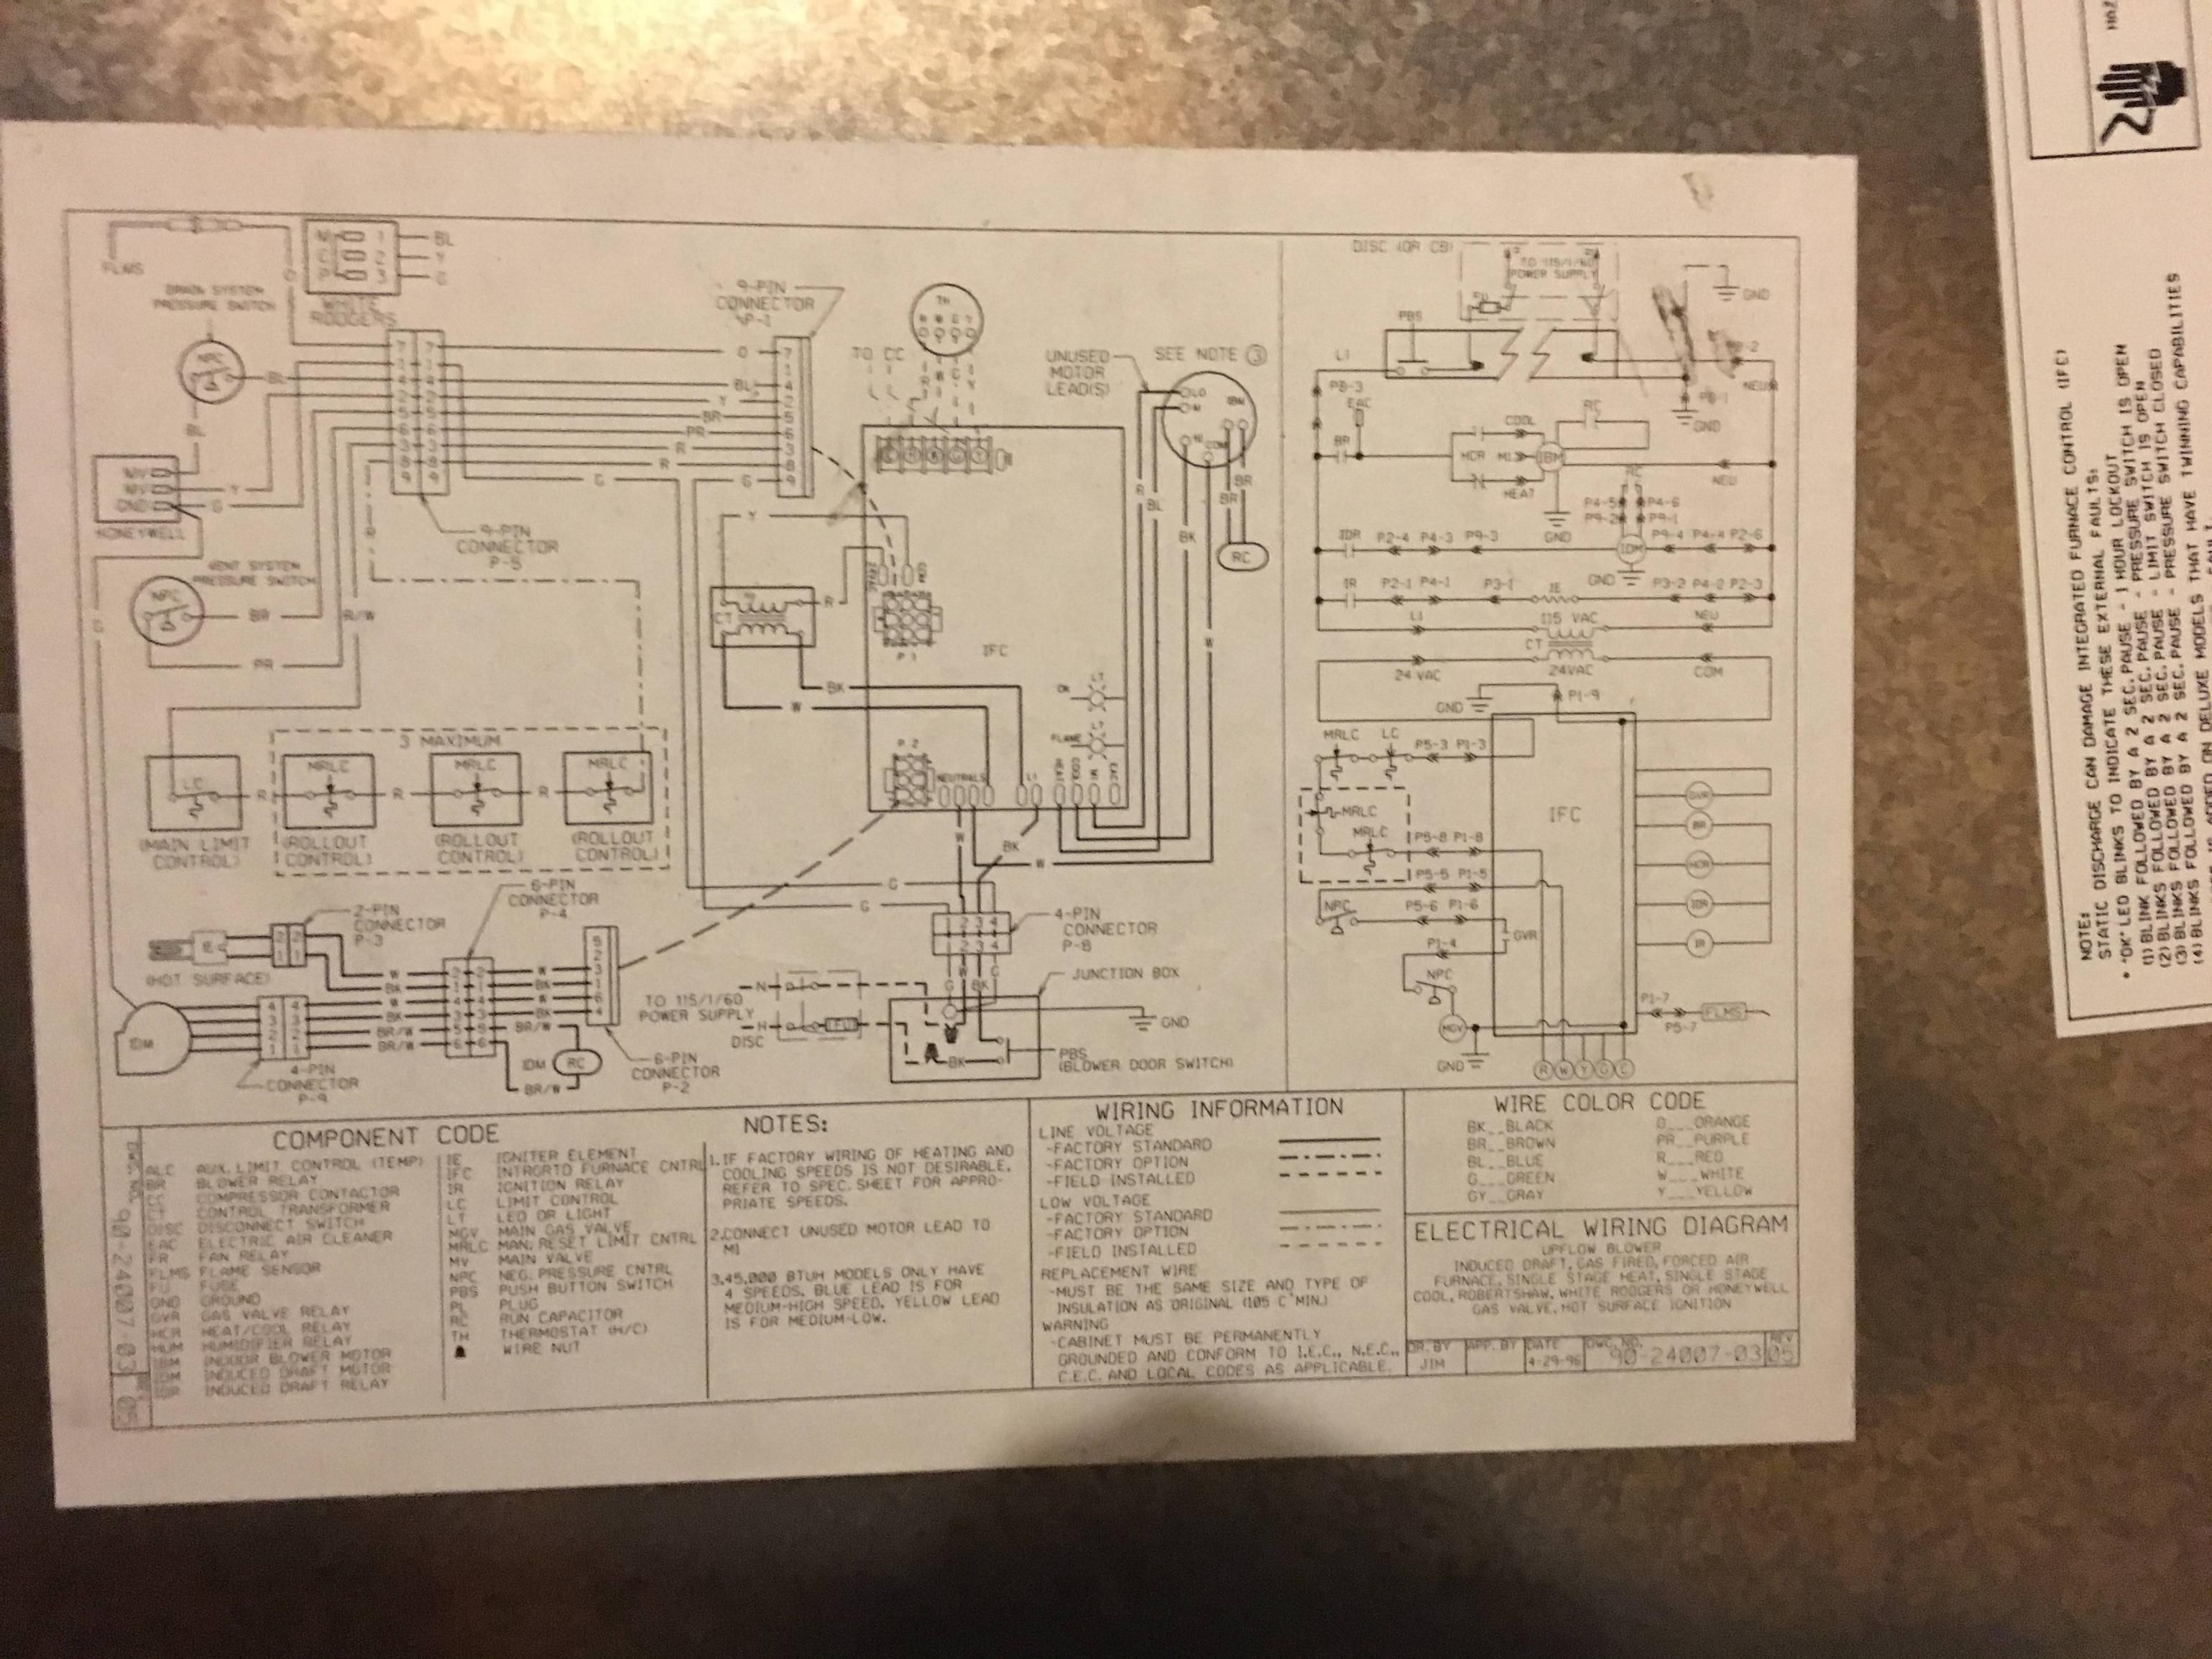 medium resolution of first company air handler wiring diagram question about wiring rh shirogadget com goodman air handler wiring diagrams trane air handler wiring diagrams